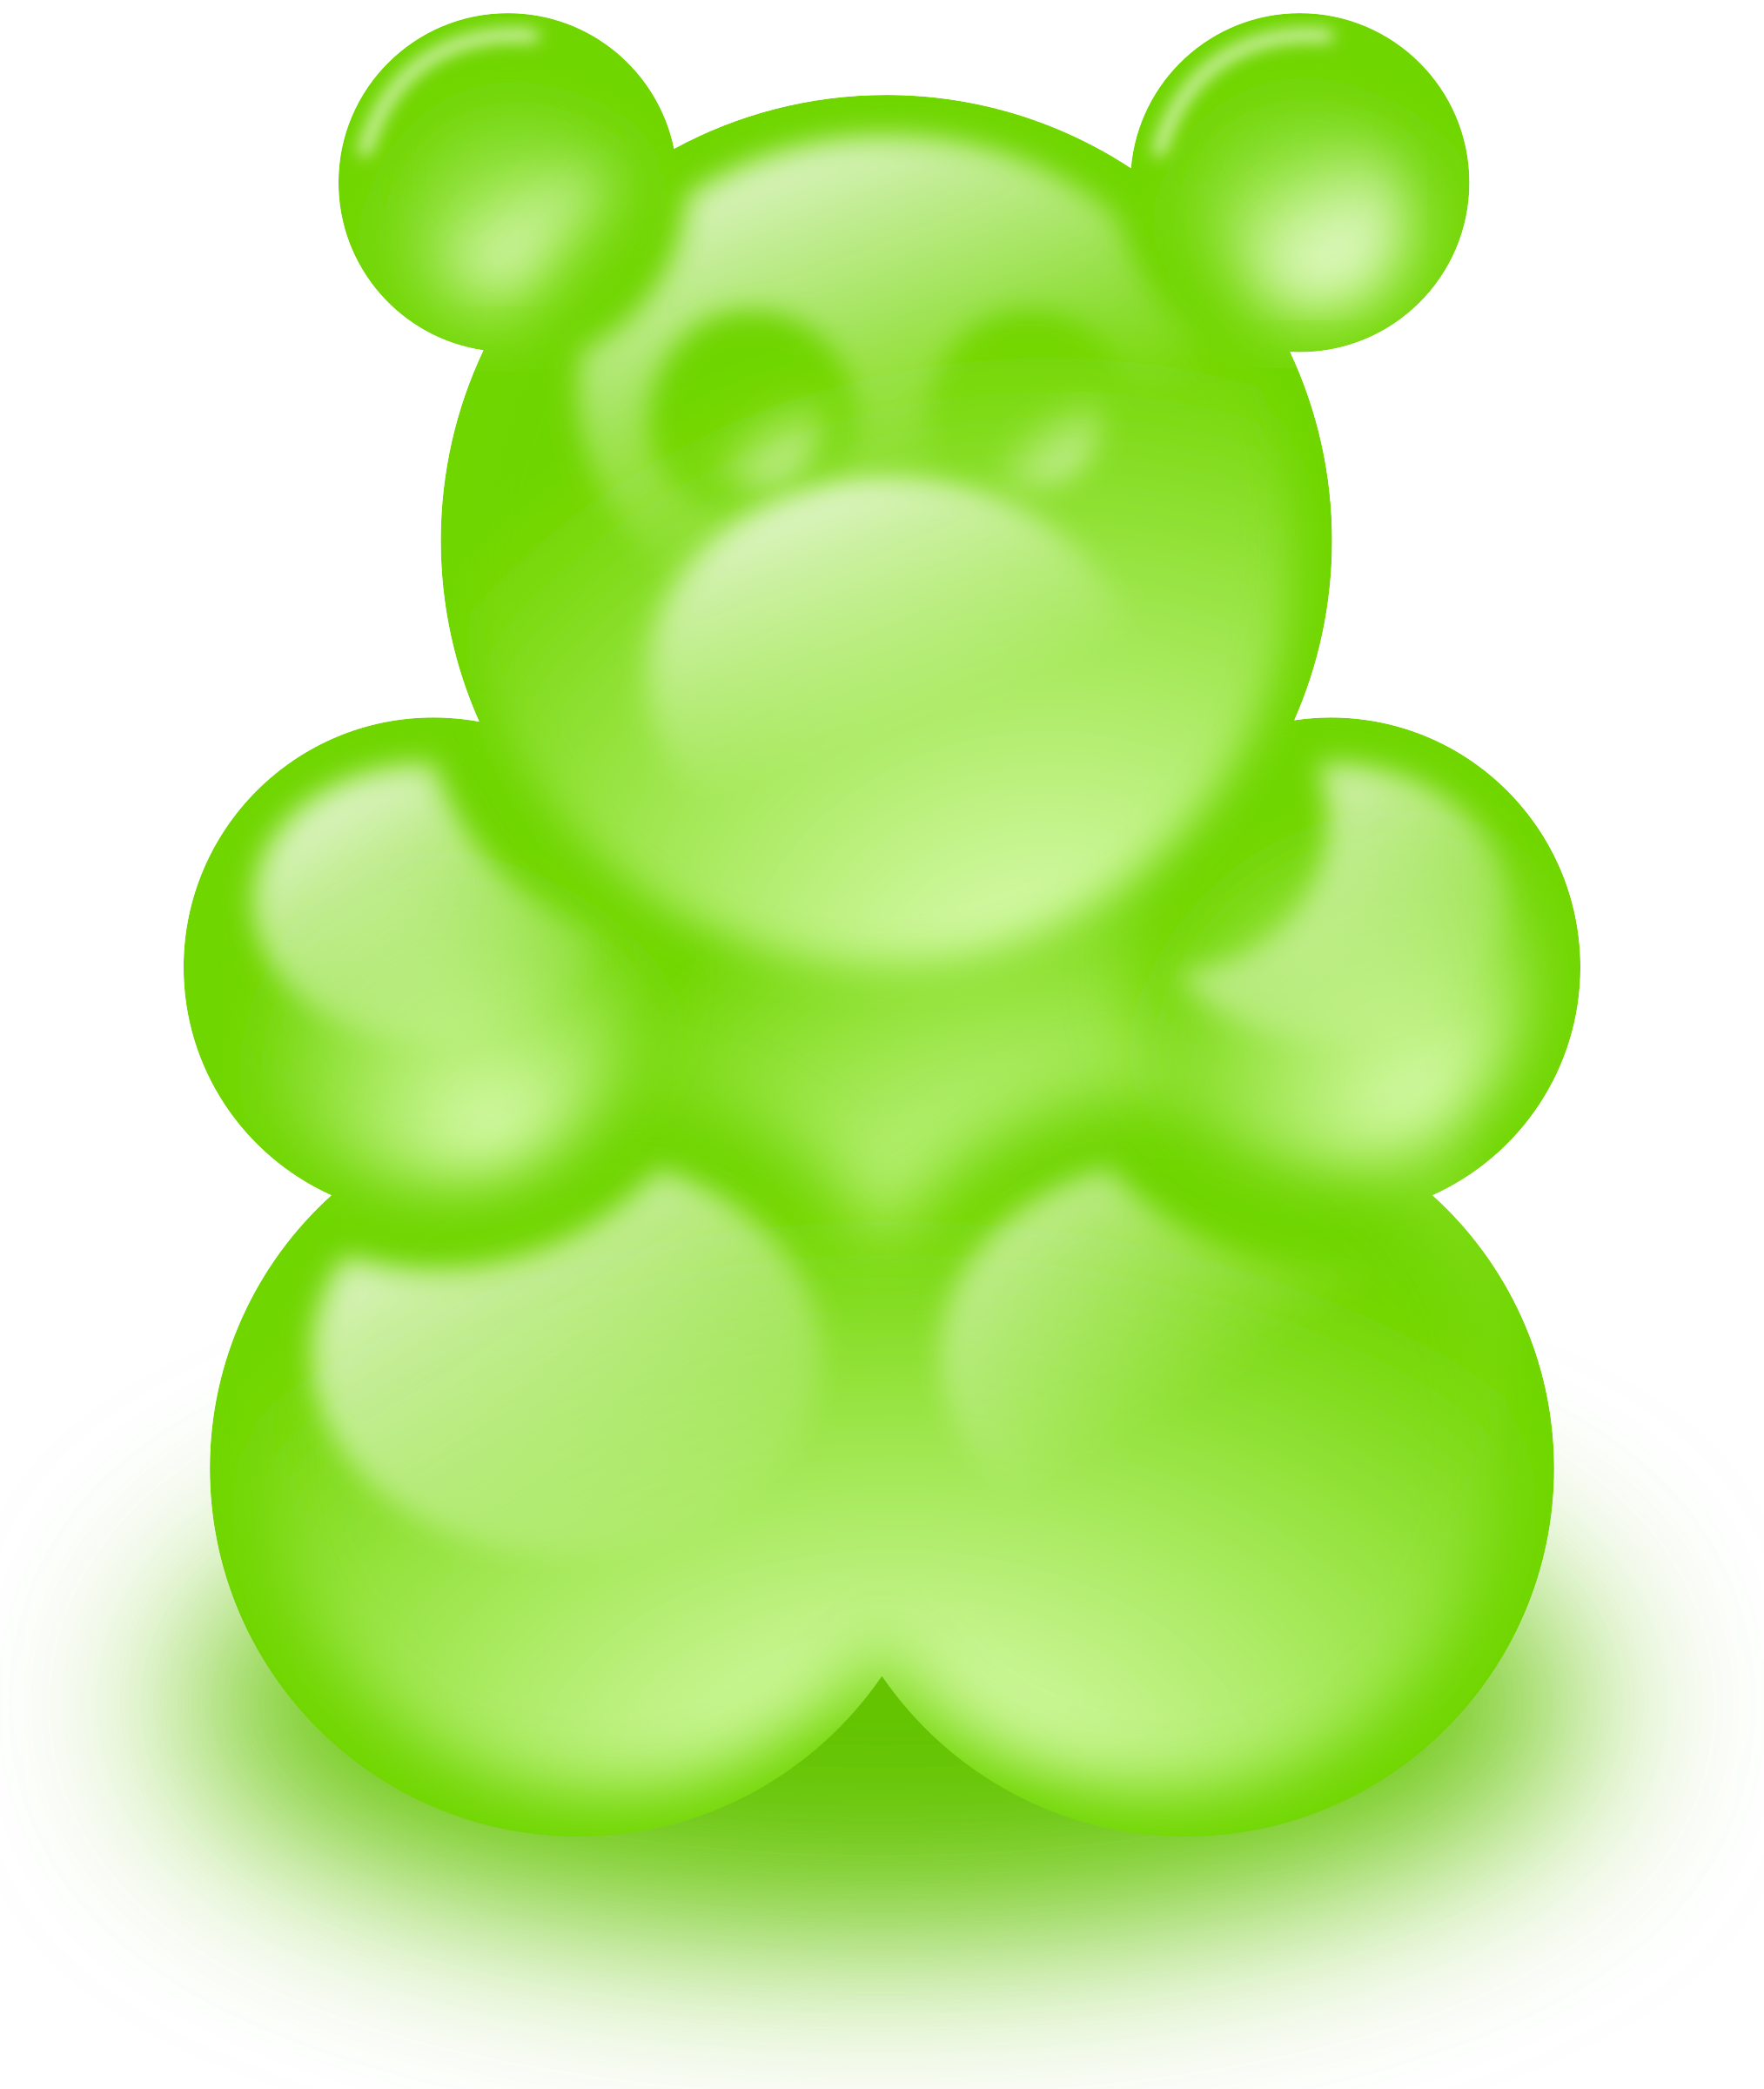 Gummy bear (sort of) by lemmling